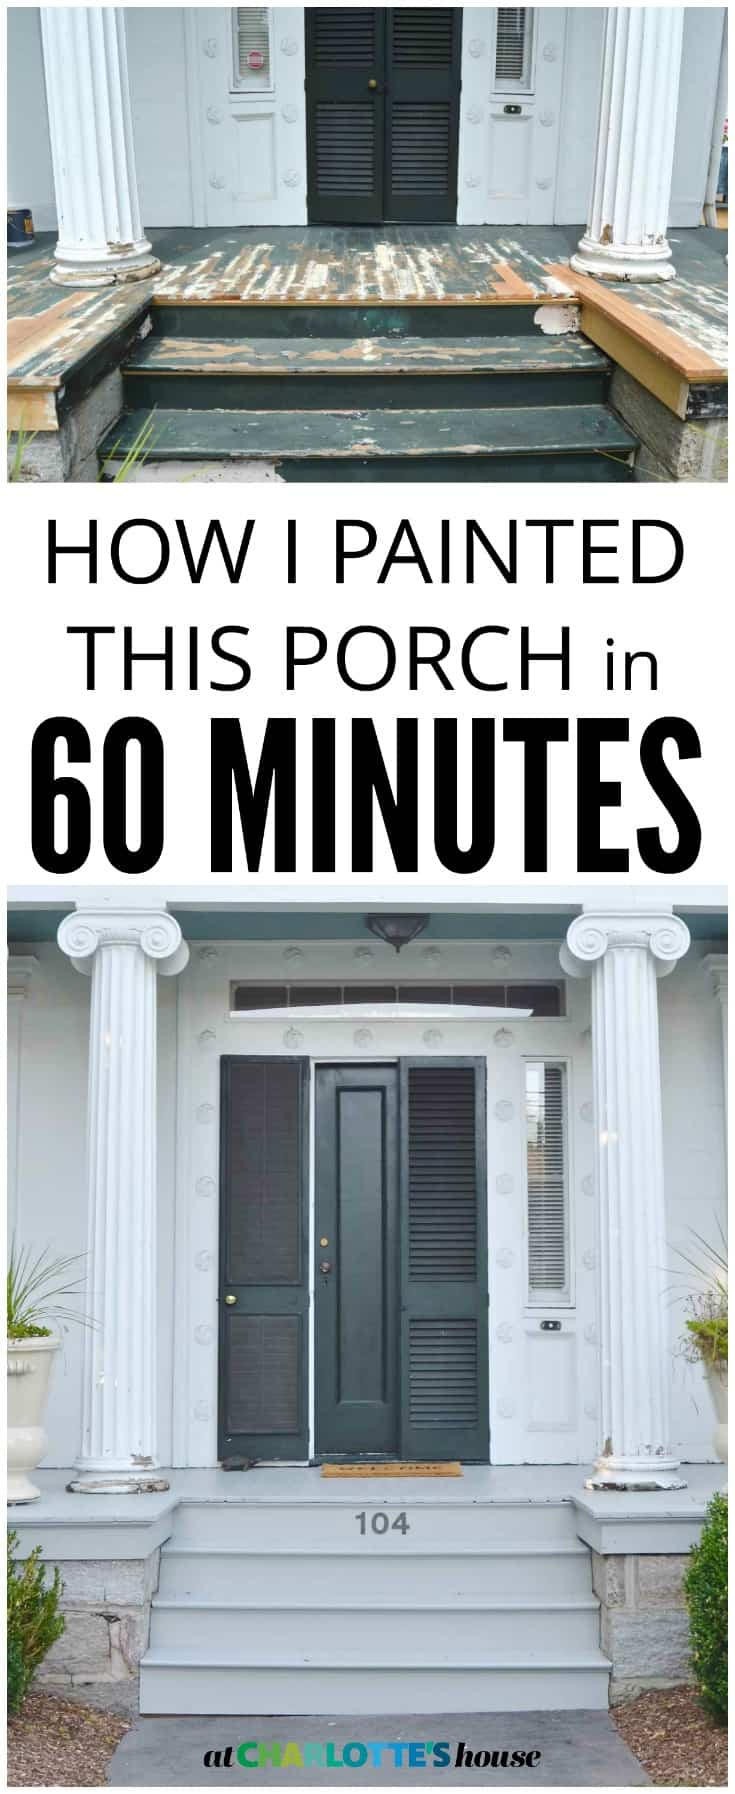 Thanks to this tool... I was able to paint this porch in under and hour!